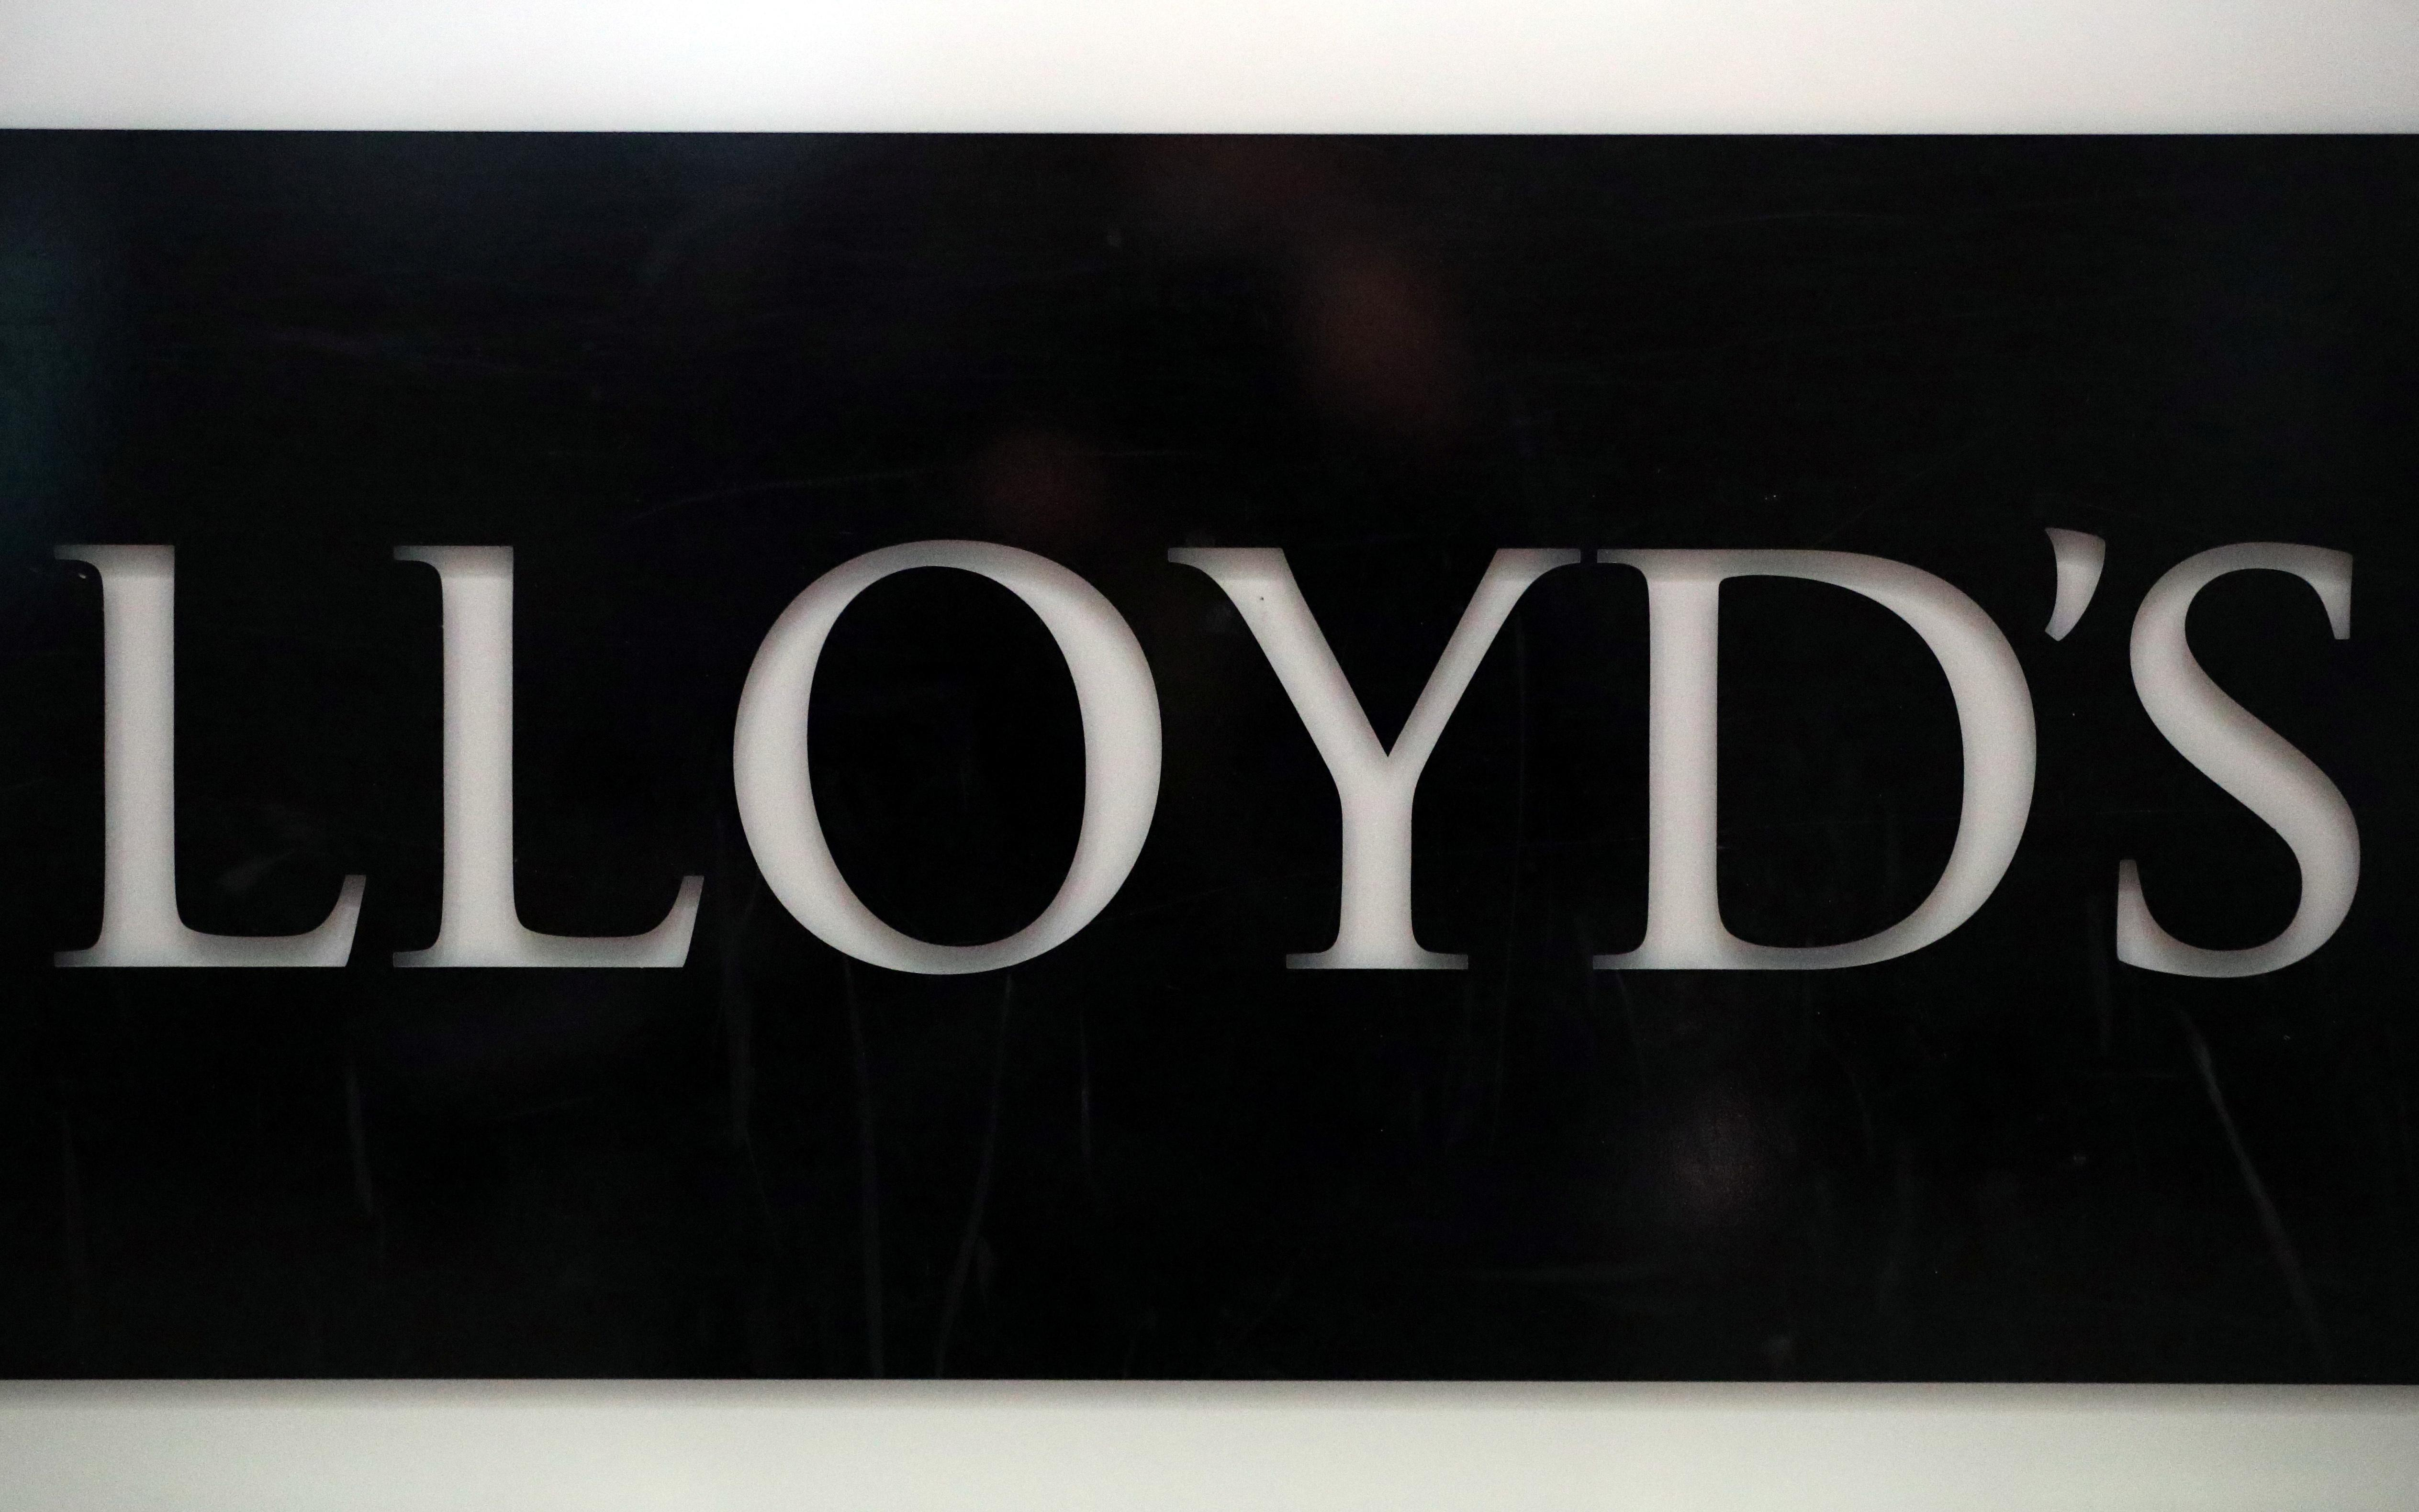 Lloyd's of London expects 'sobering' culture assessment